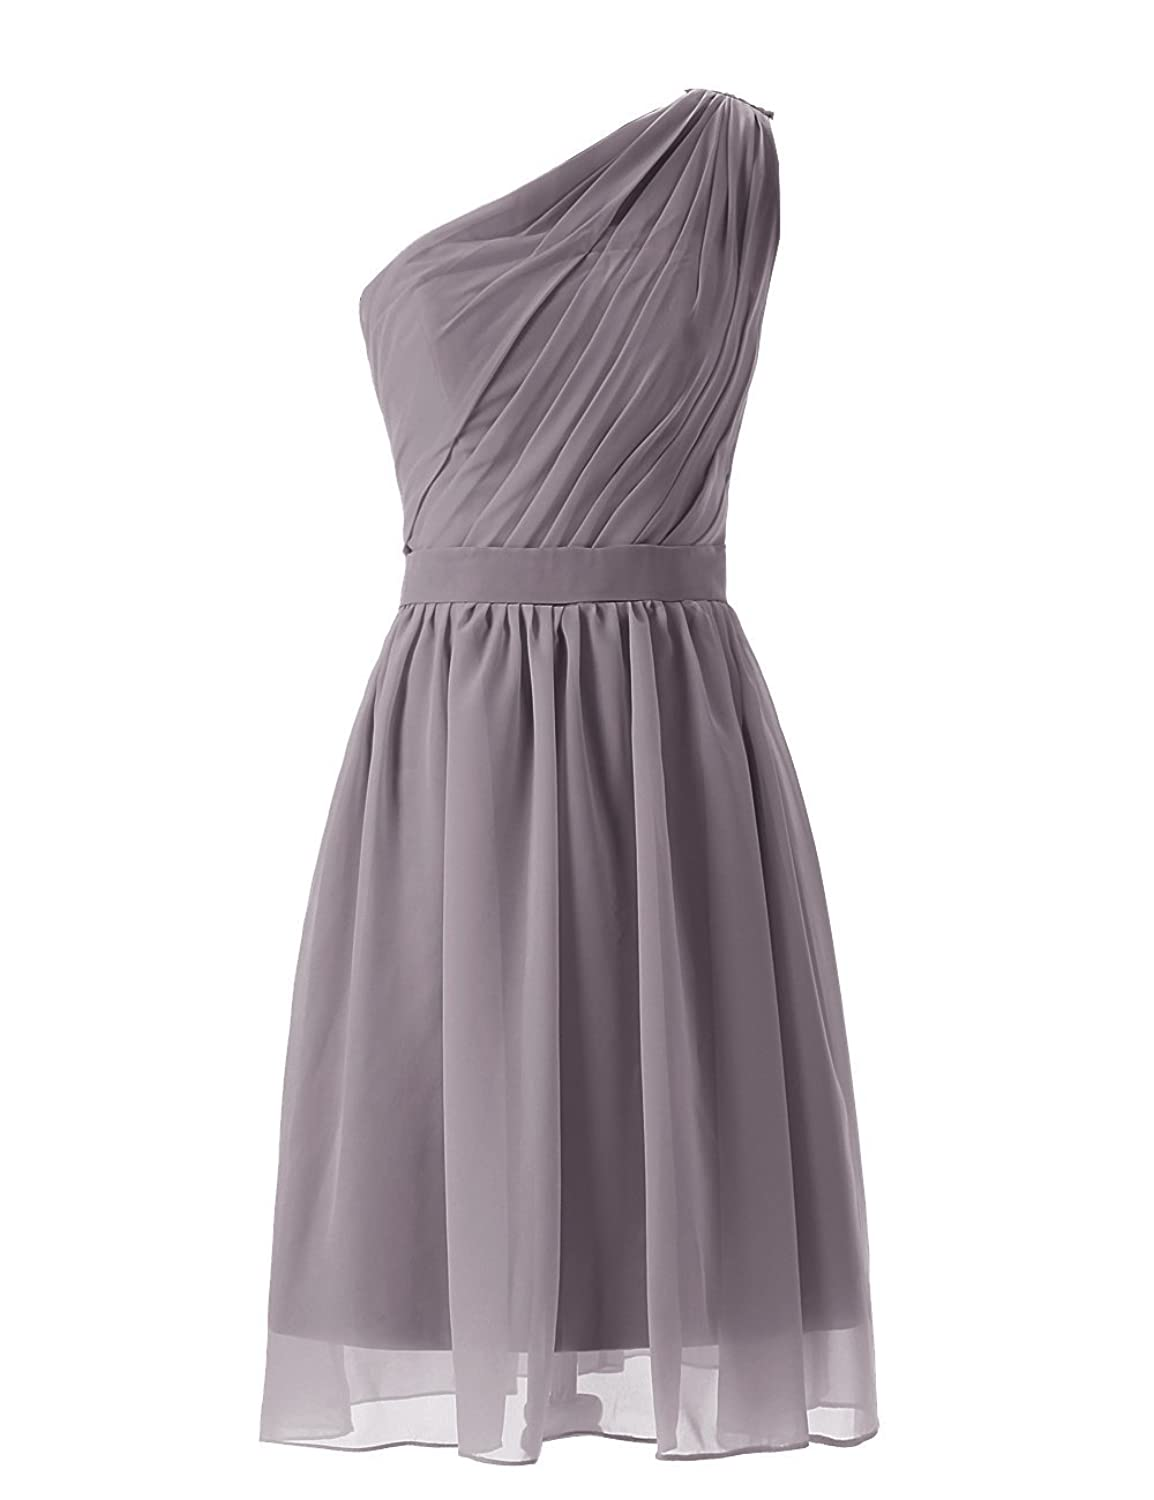 Olidress Women's Simple Chiffon One Shoulder Short Bridesmaid Dress